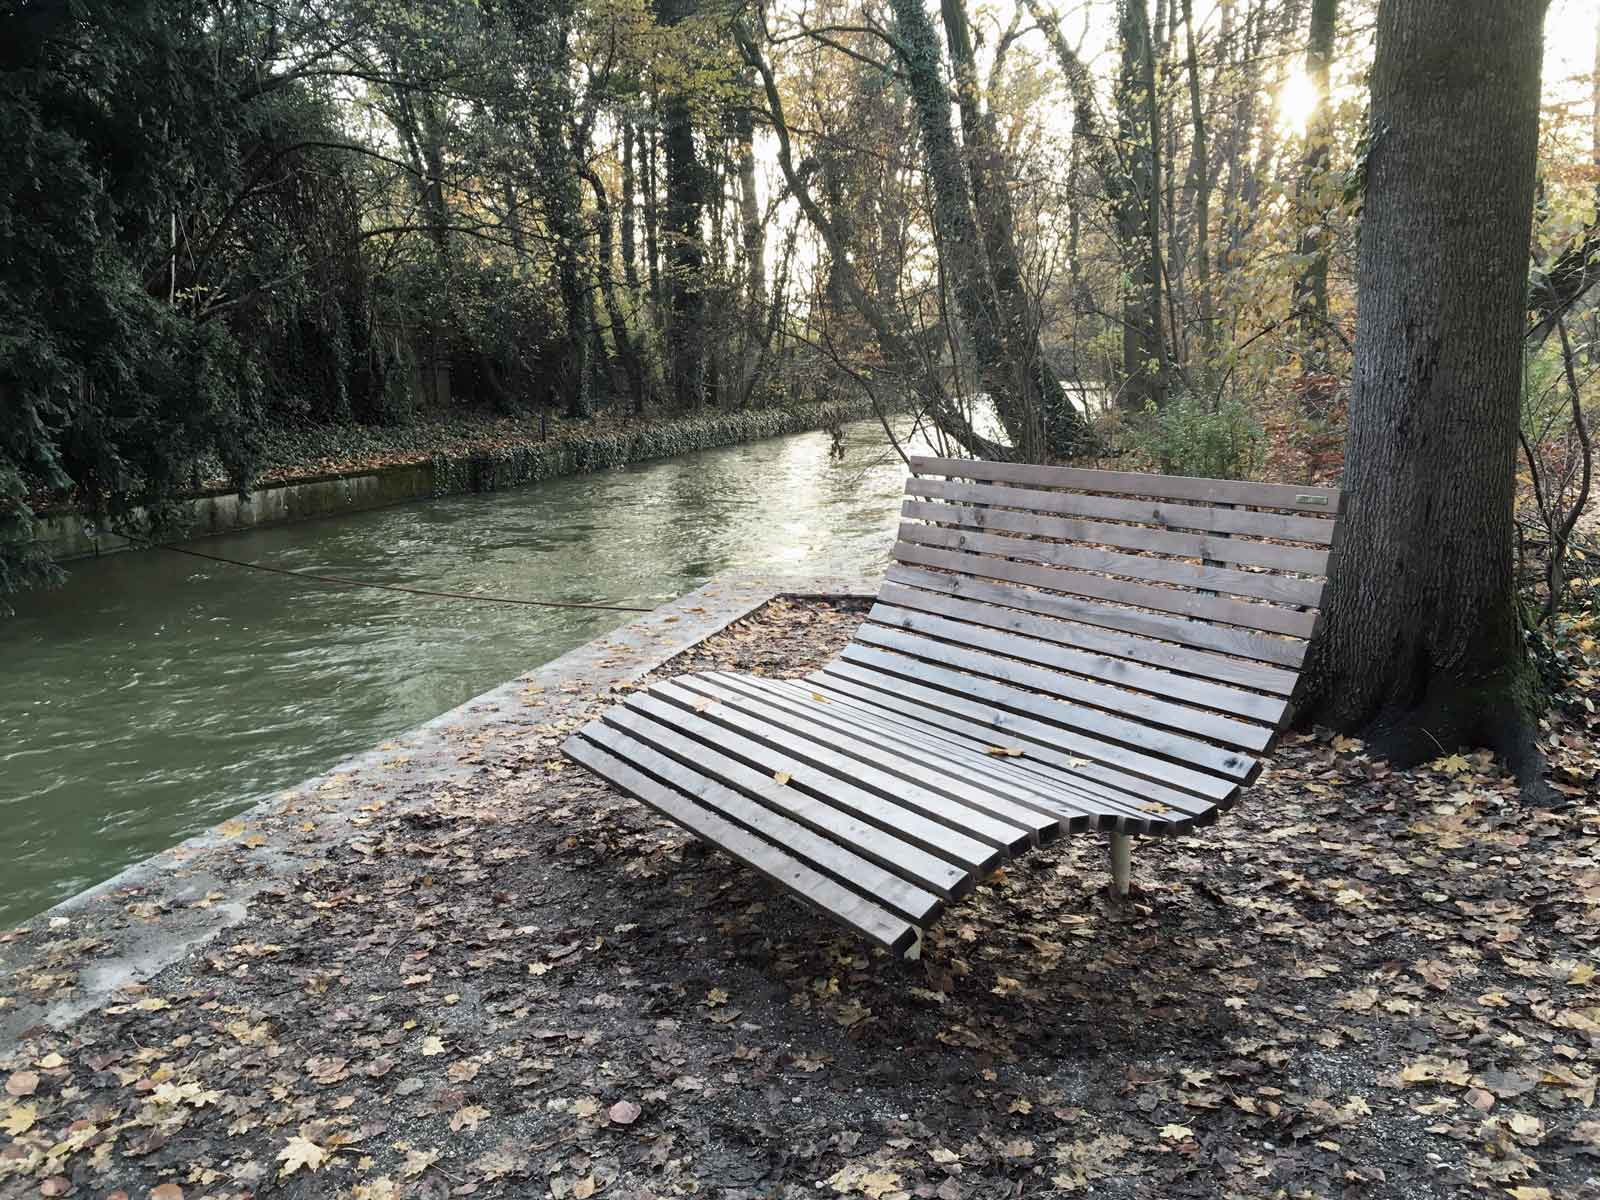 Waved-Bench